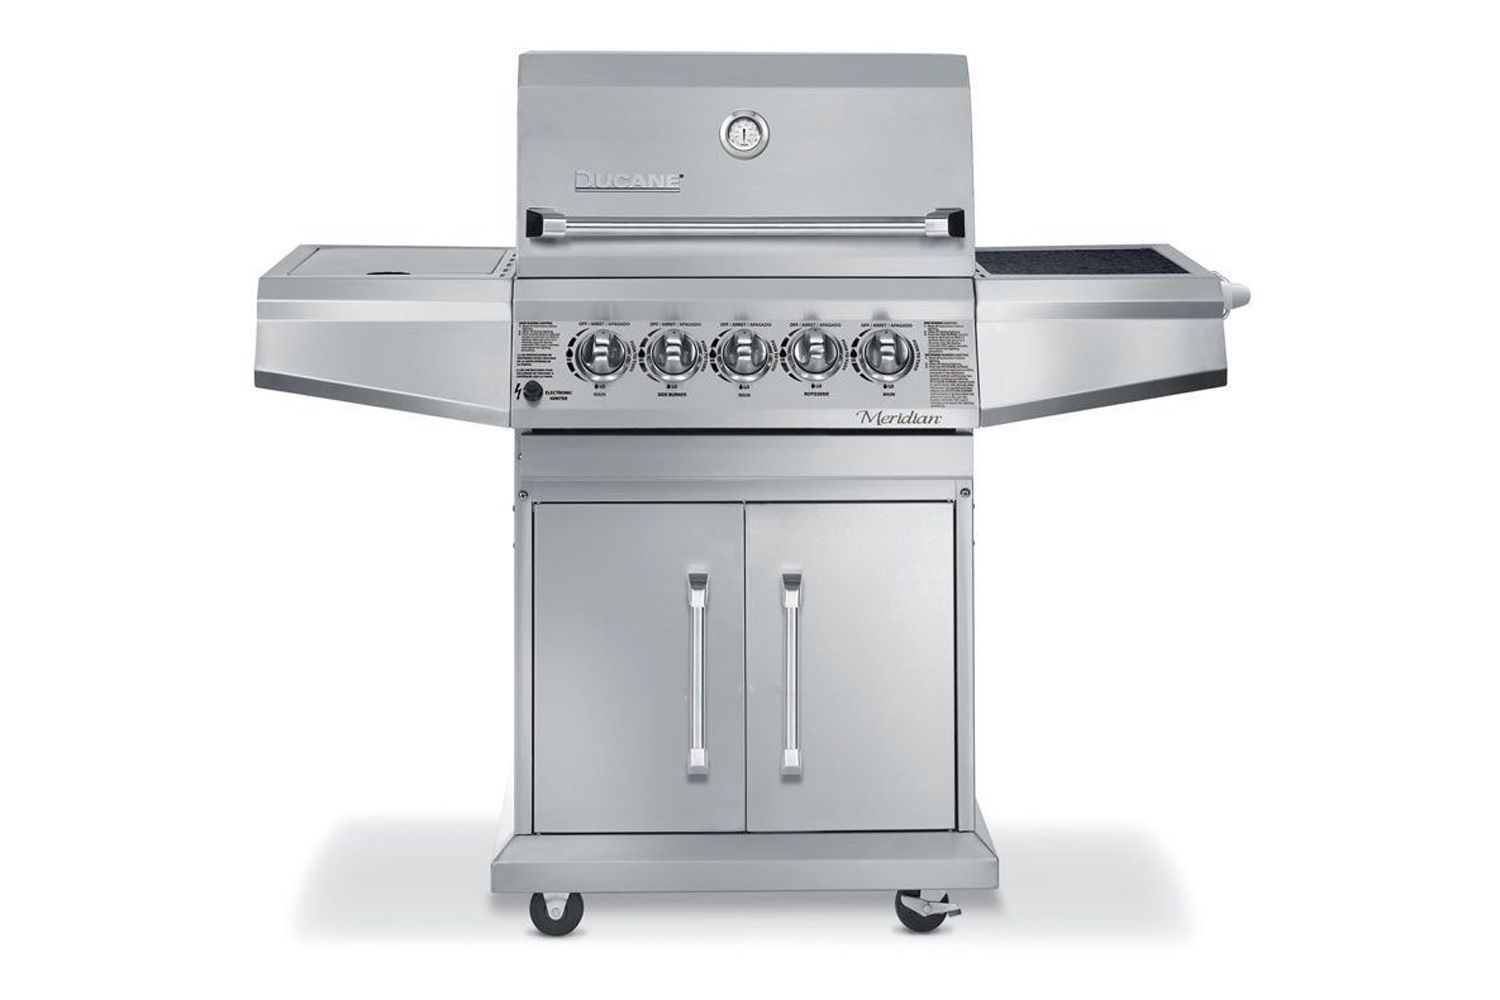 Ducane Stainless Steel 36 000 Btu Gas Grill Review